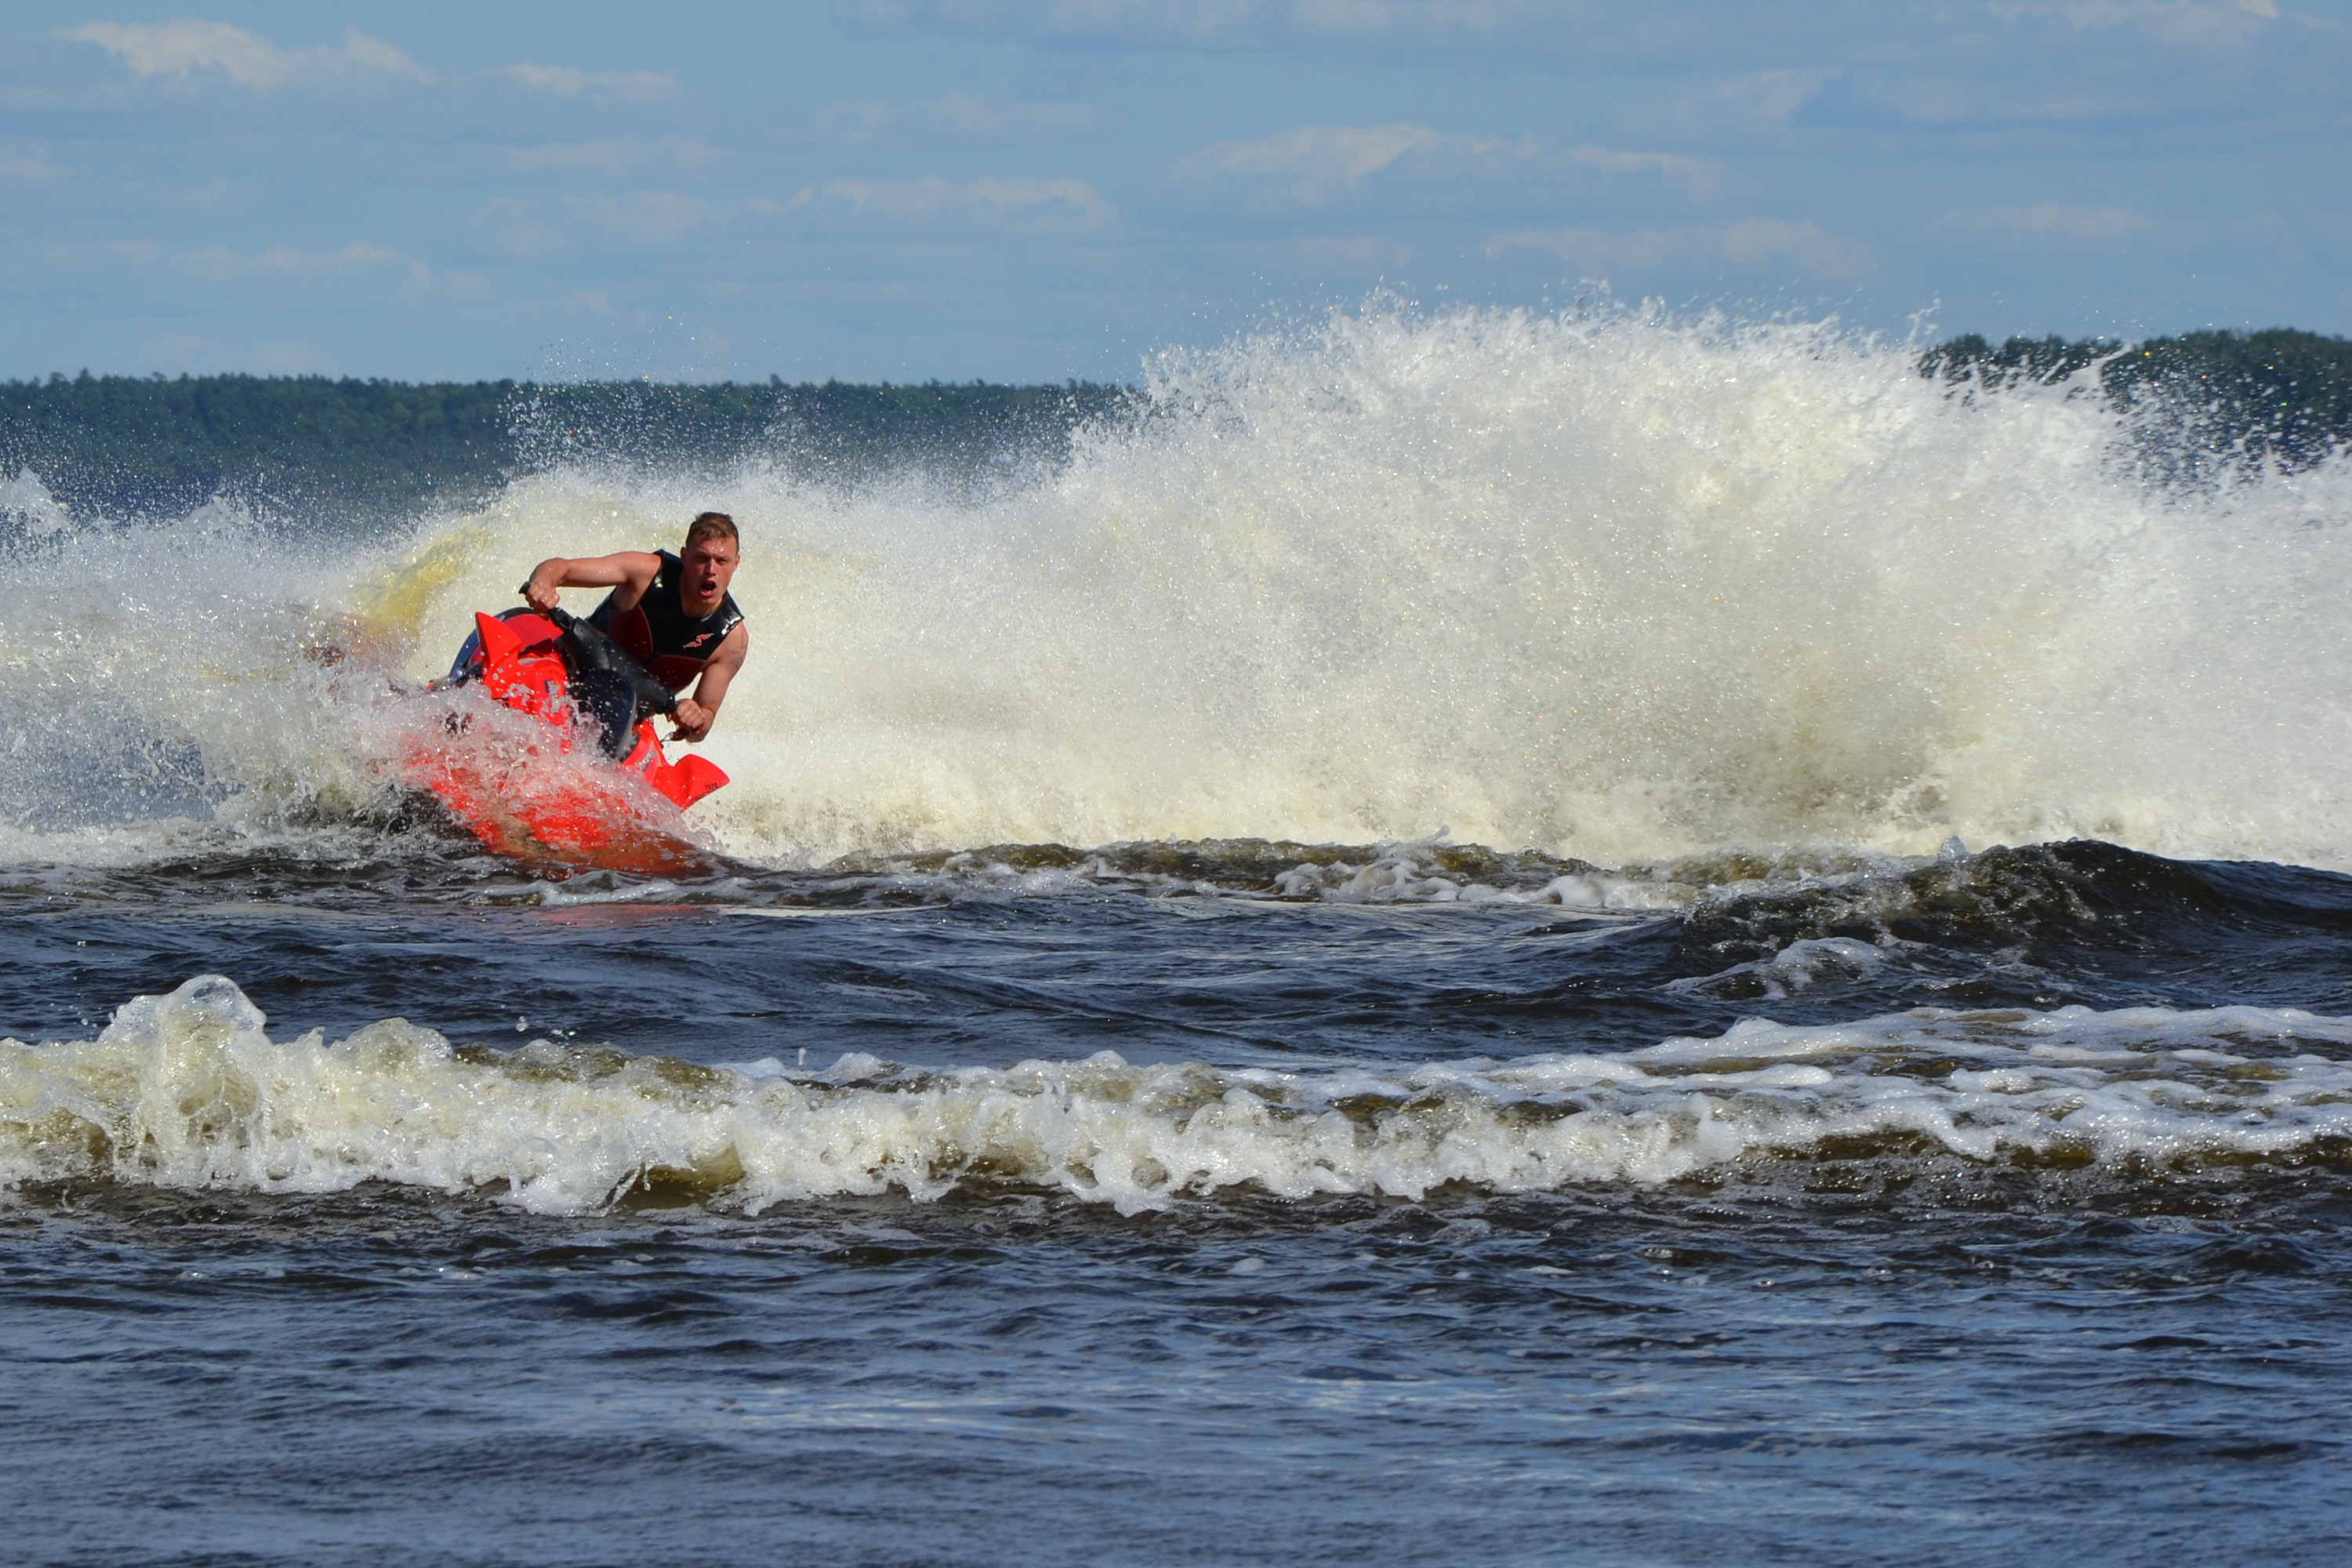 Jet ski, Sports, Risk, Rough, Ship, HQ Photo